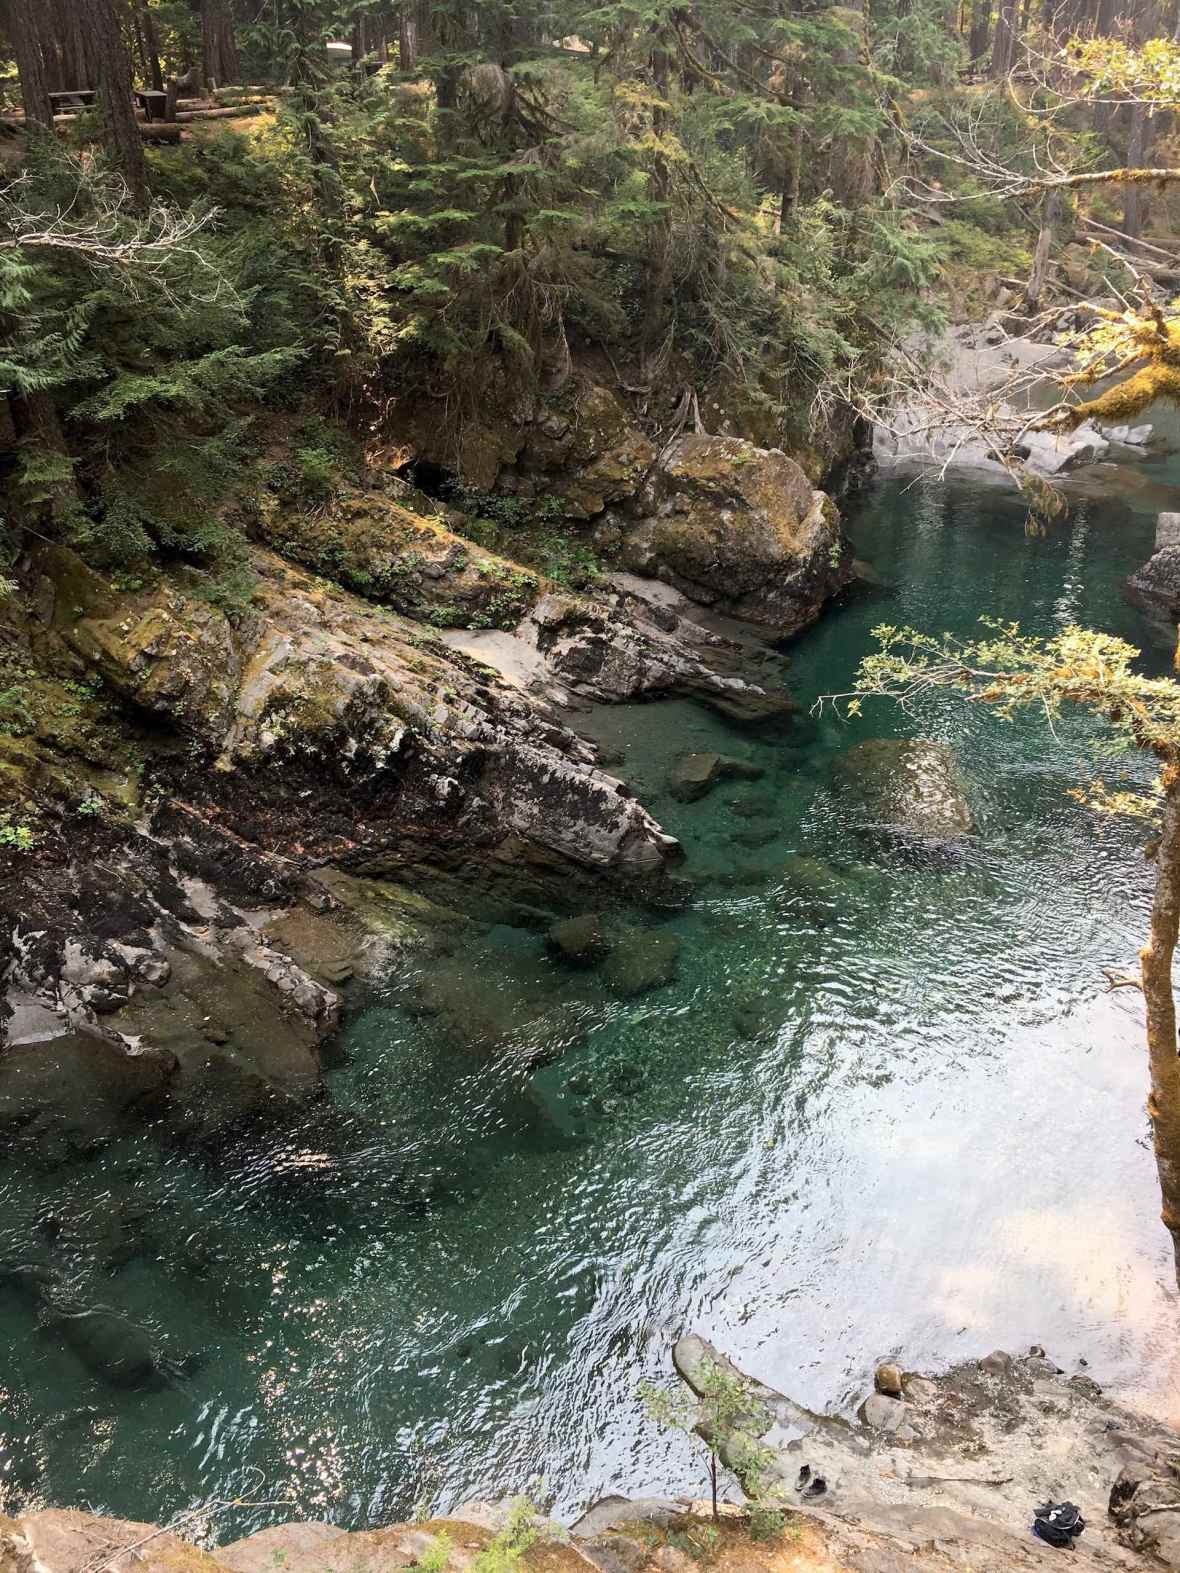 Ohanapecosh River in Mt Ranier National Park